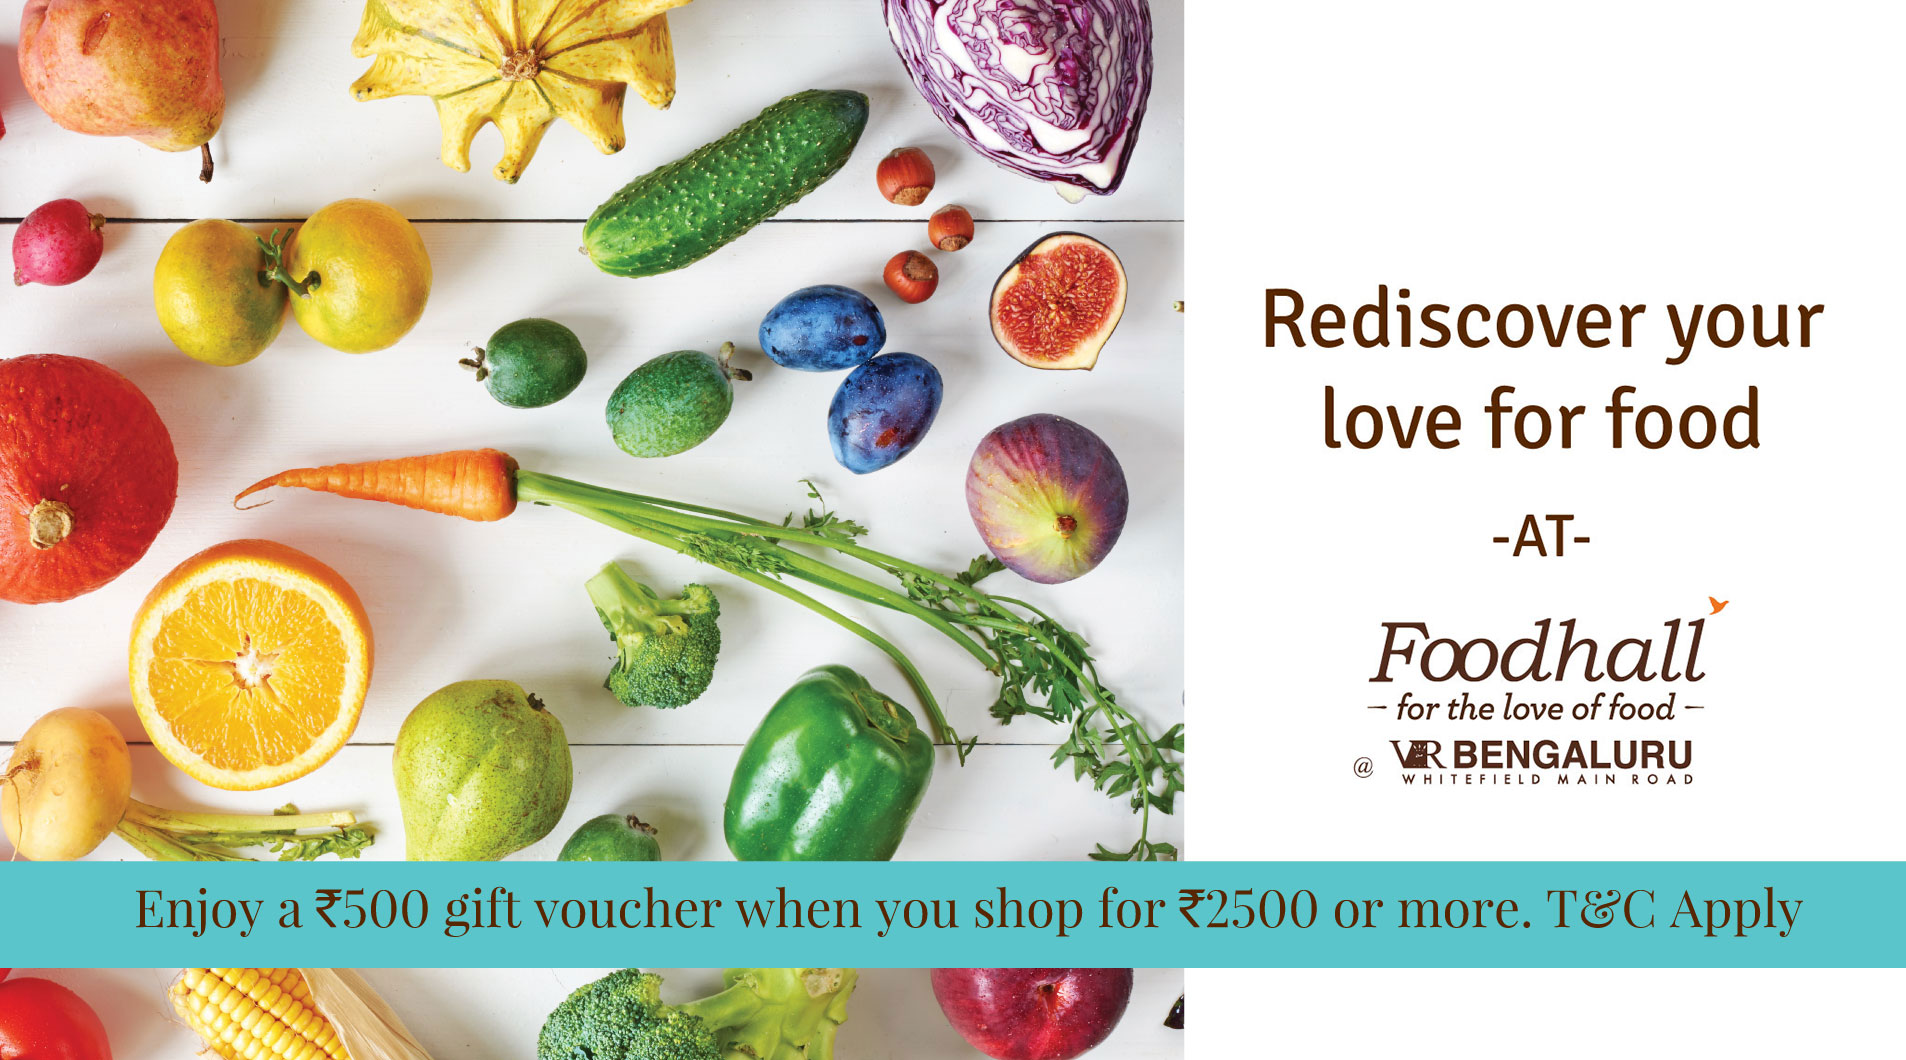 Foodhall offer